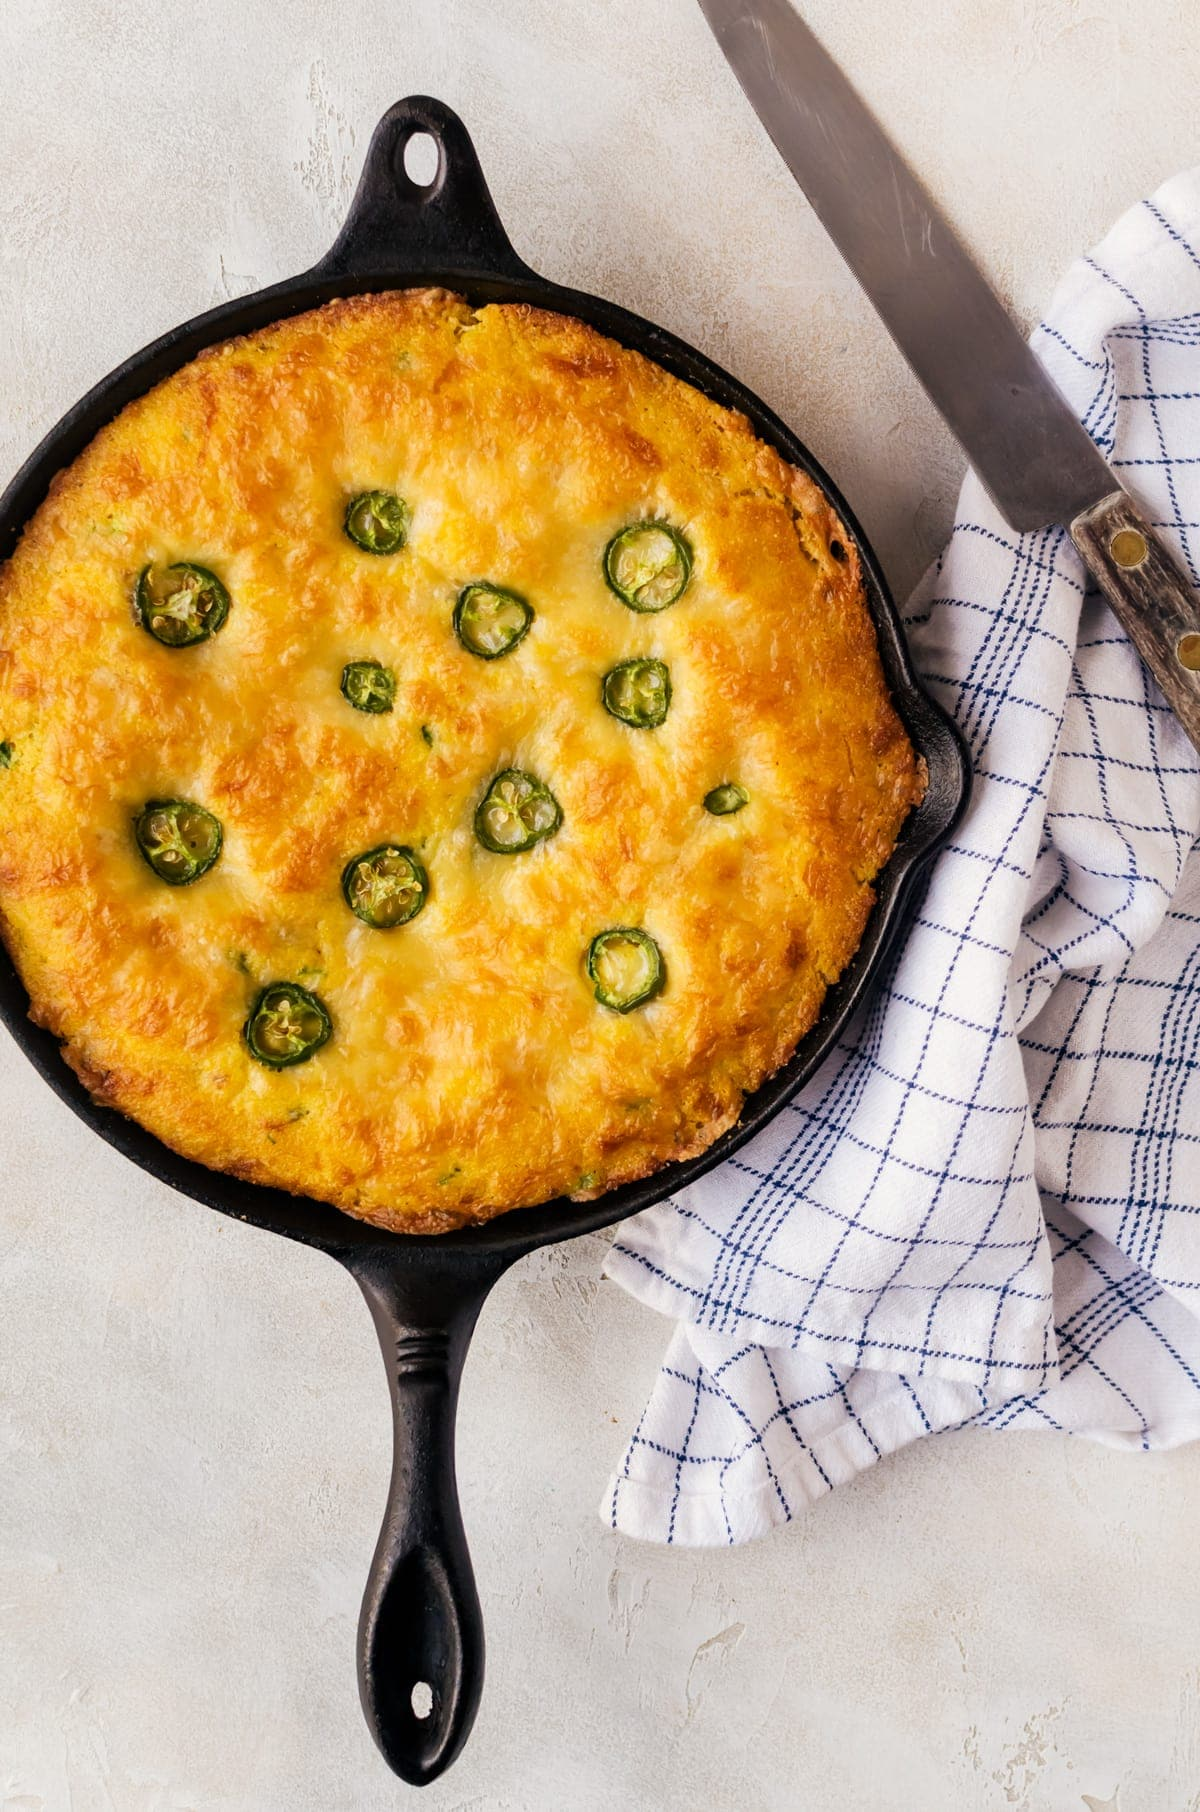 cheddar jalapeno cornbread in skillet on table with kitchen towel